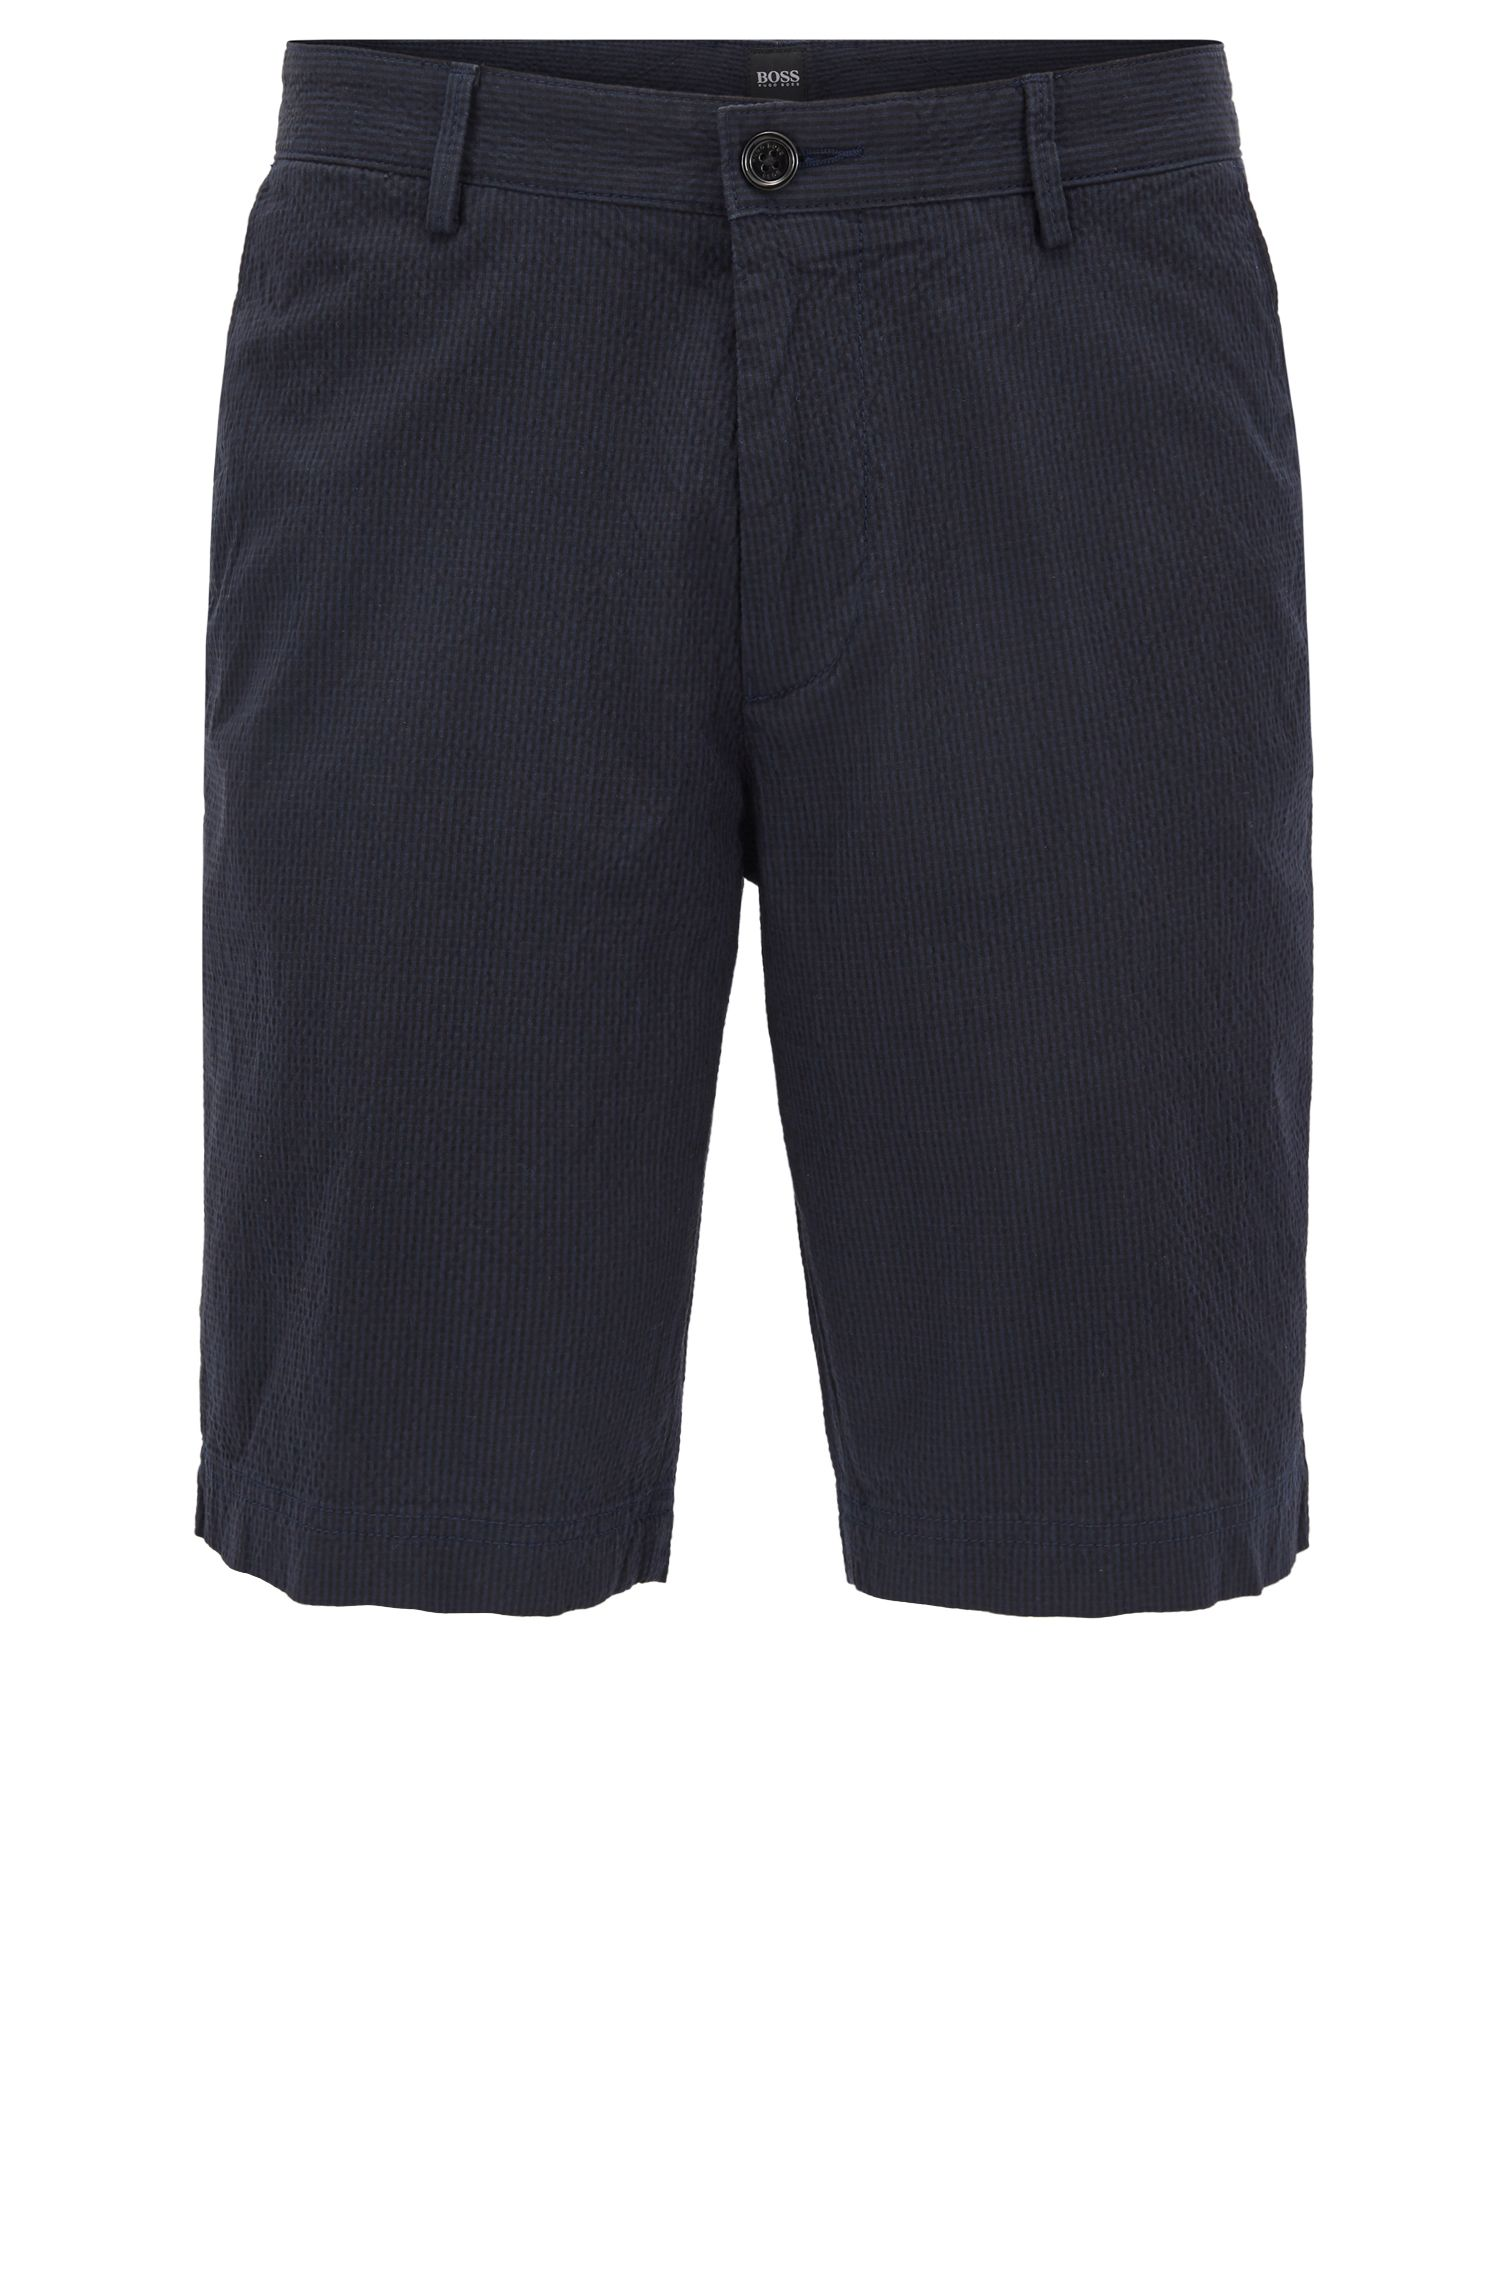 Seersucker Stretch Cotton Short, Regular Fit | Crigan Short W, Dark Blue